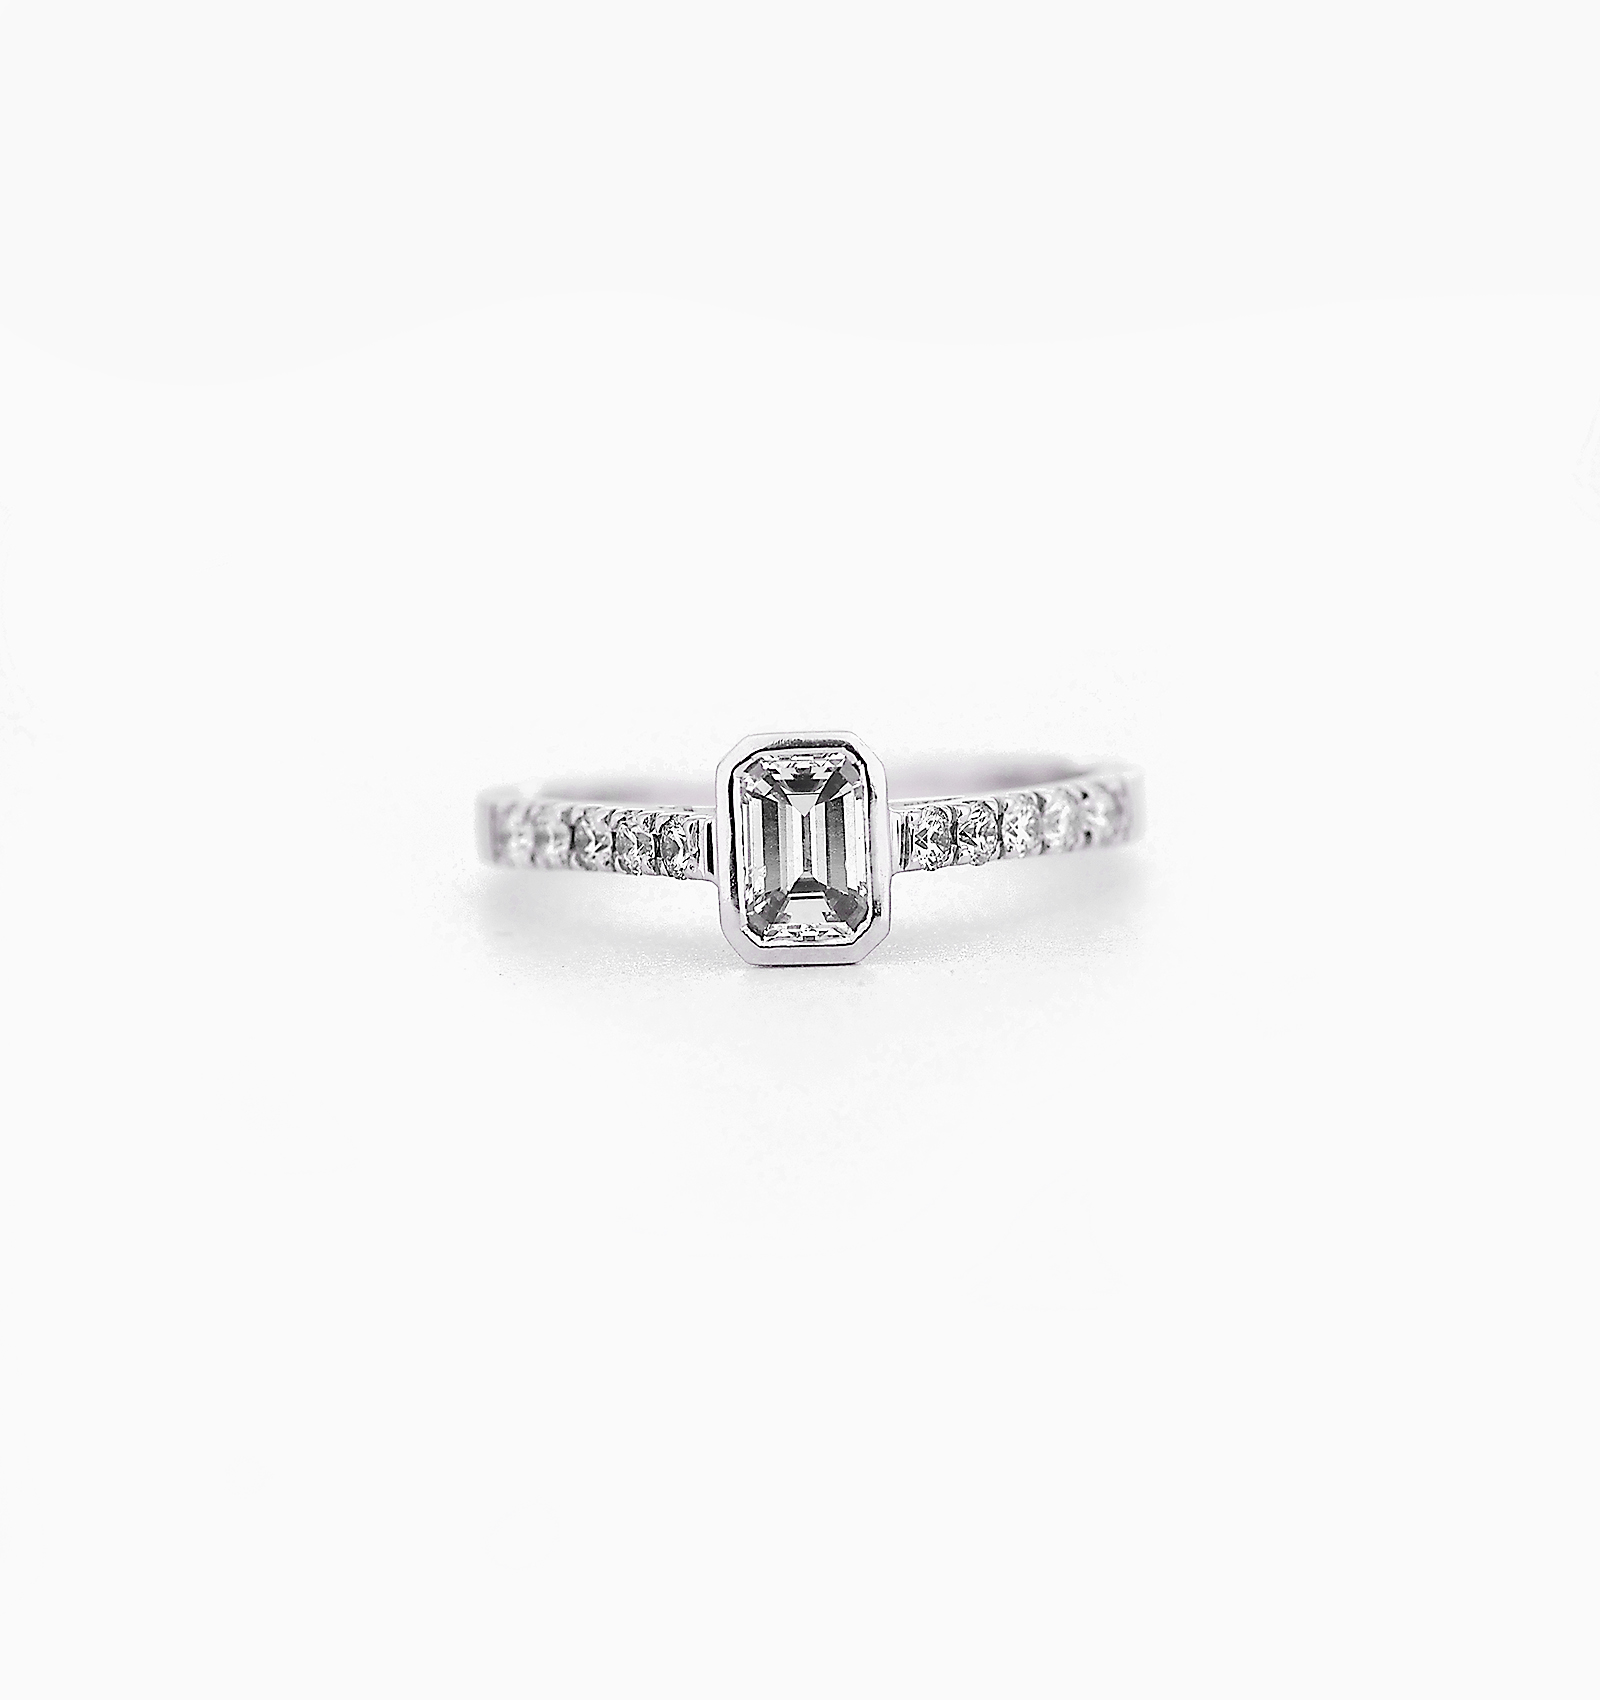 ring in shank solitaire detail engagement scroll white with graduated diamond oval platinum rings